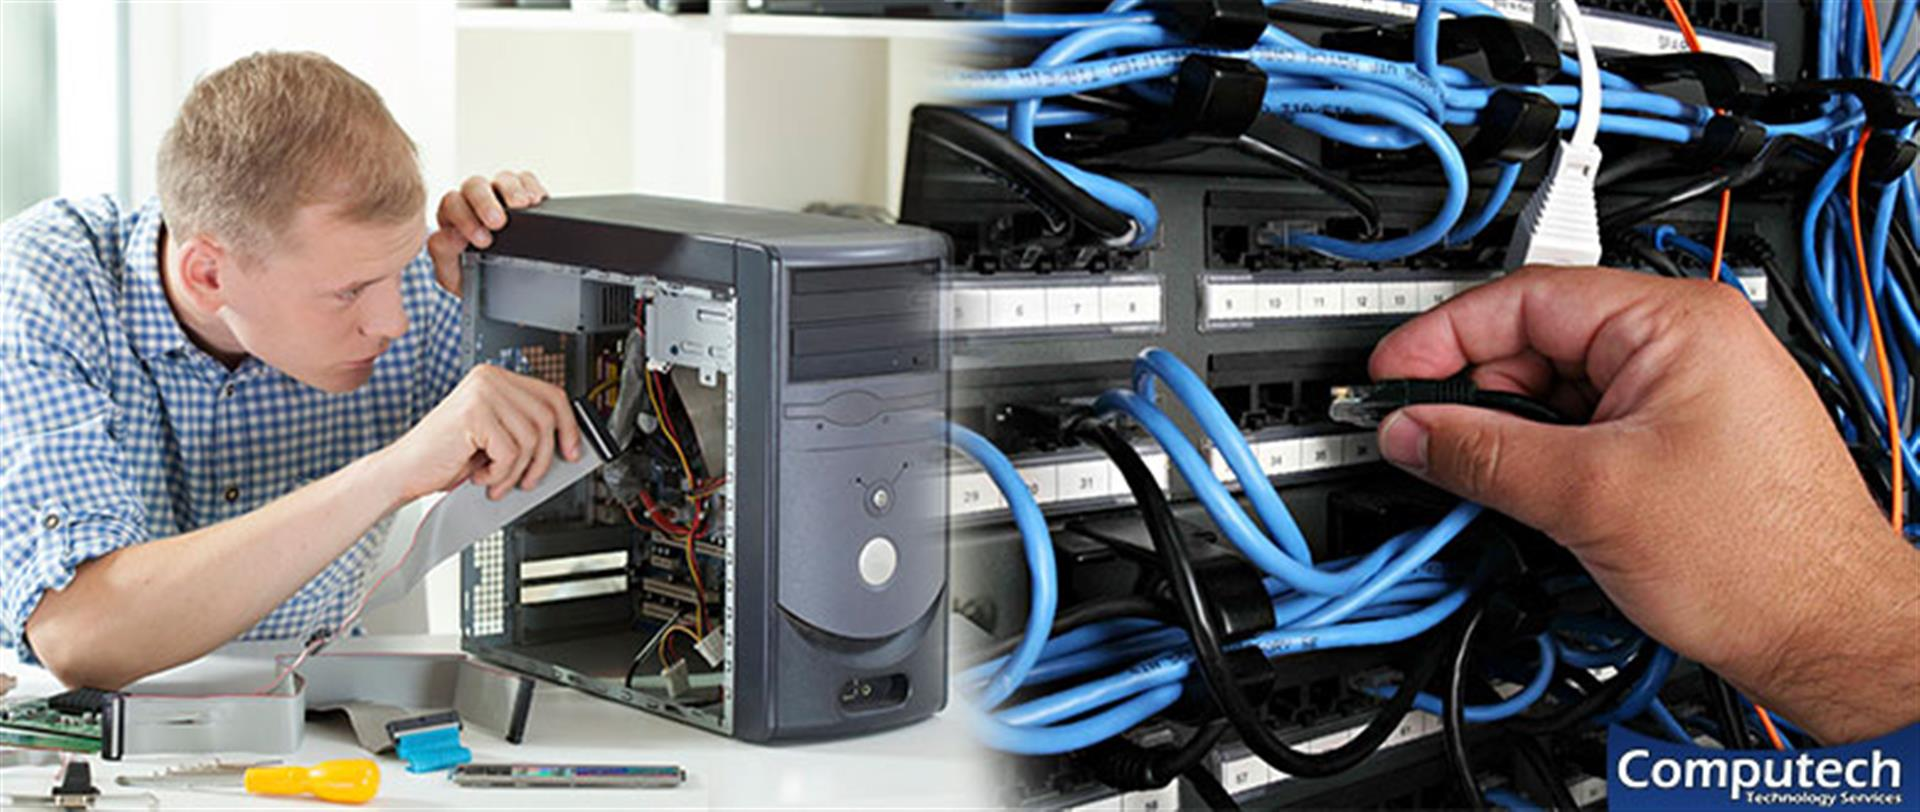 Falls Church Virginia Onsite Computer PC & Printer Repairs, Networks, Voice & Data Cabling Services